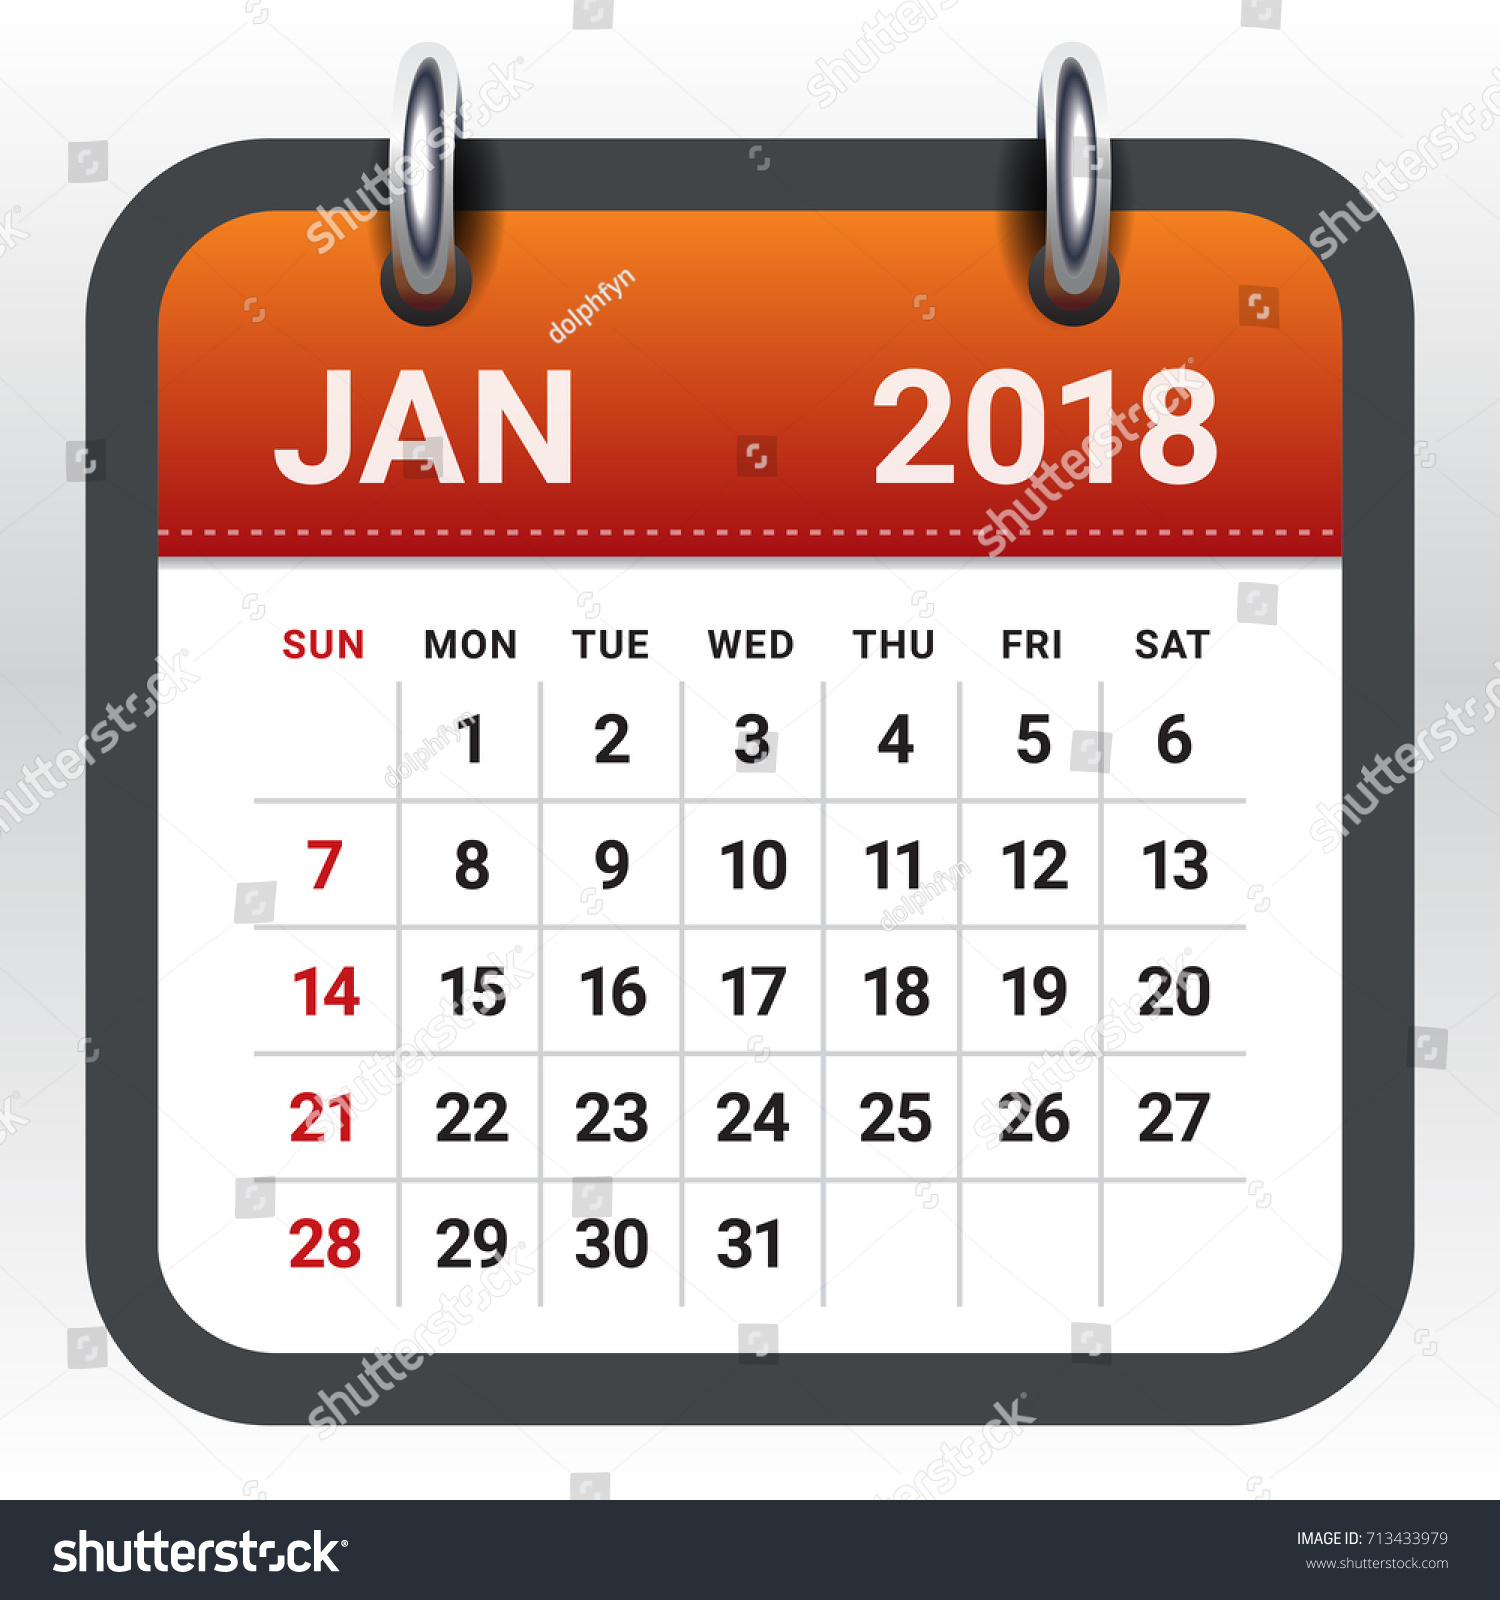 January 2018 Calendar Vector Illustration Simple Stock Vector ...